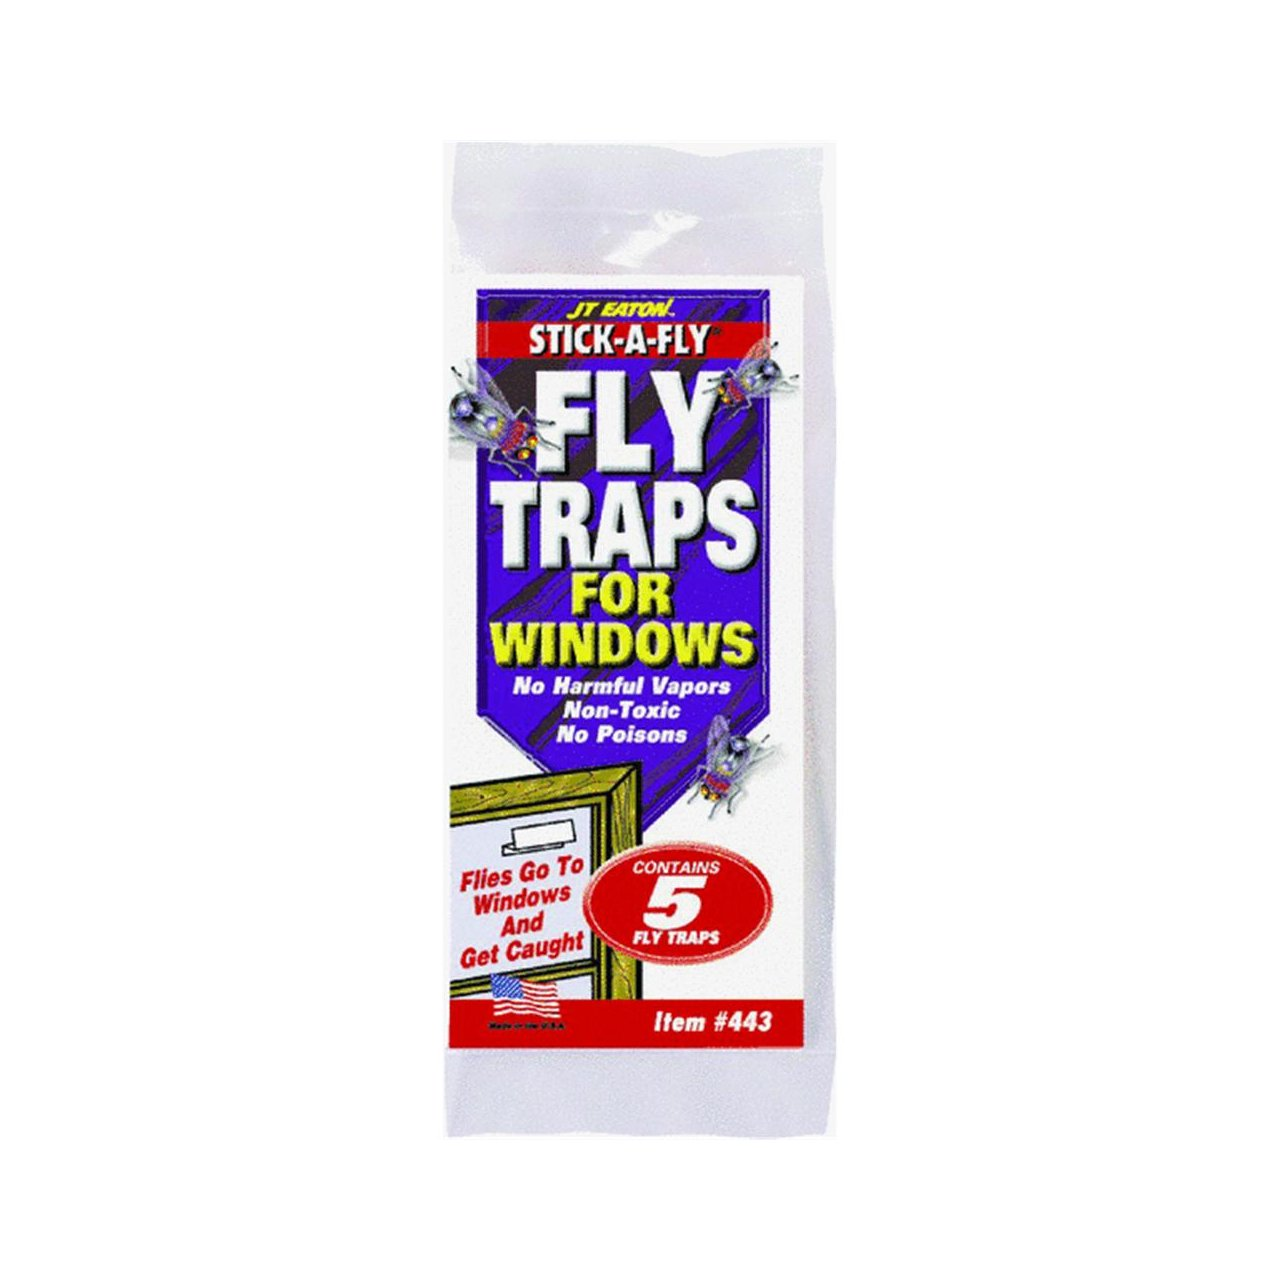 JT EATON443Stick-A-Fly Fly Trap For Windows-5PK WINDOW FLY TRAP (並行輸入品) B002ITSNAK